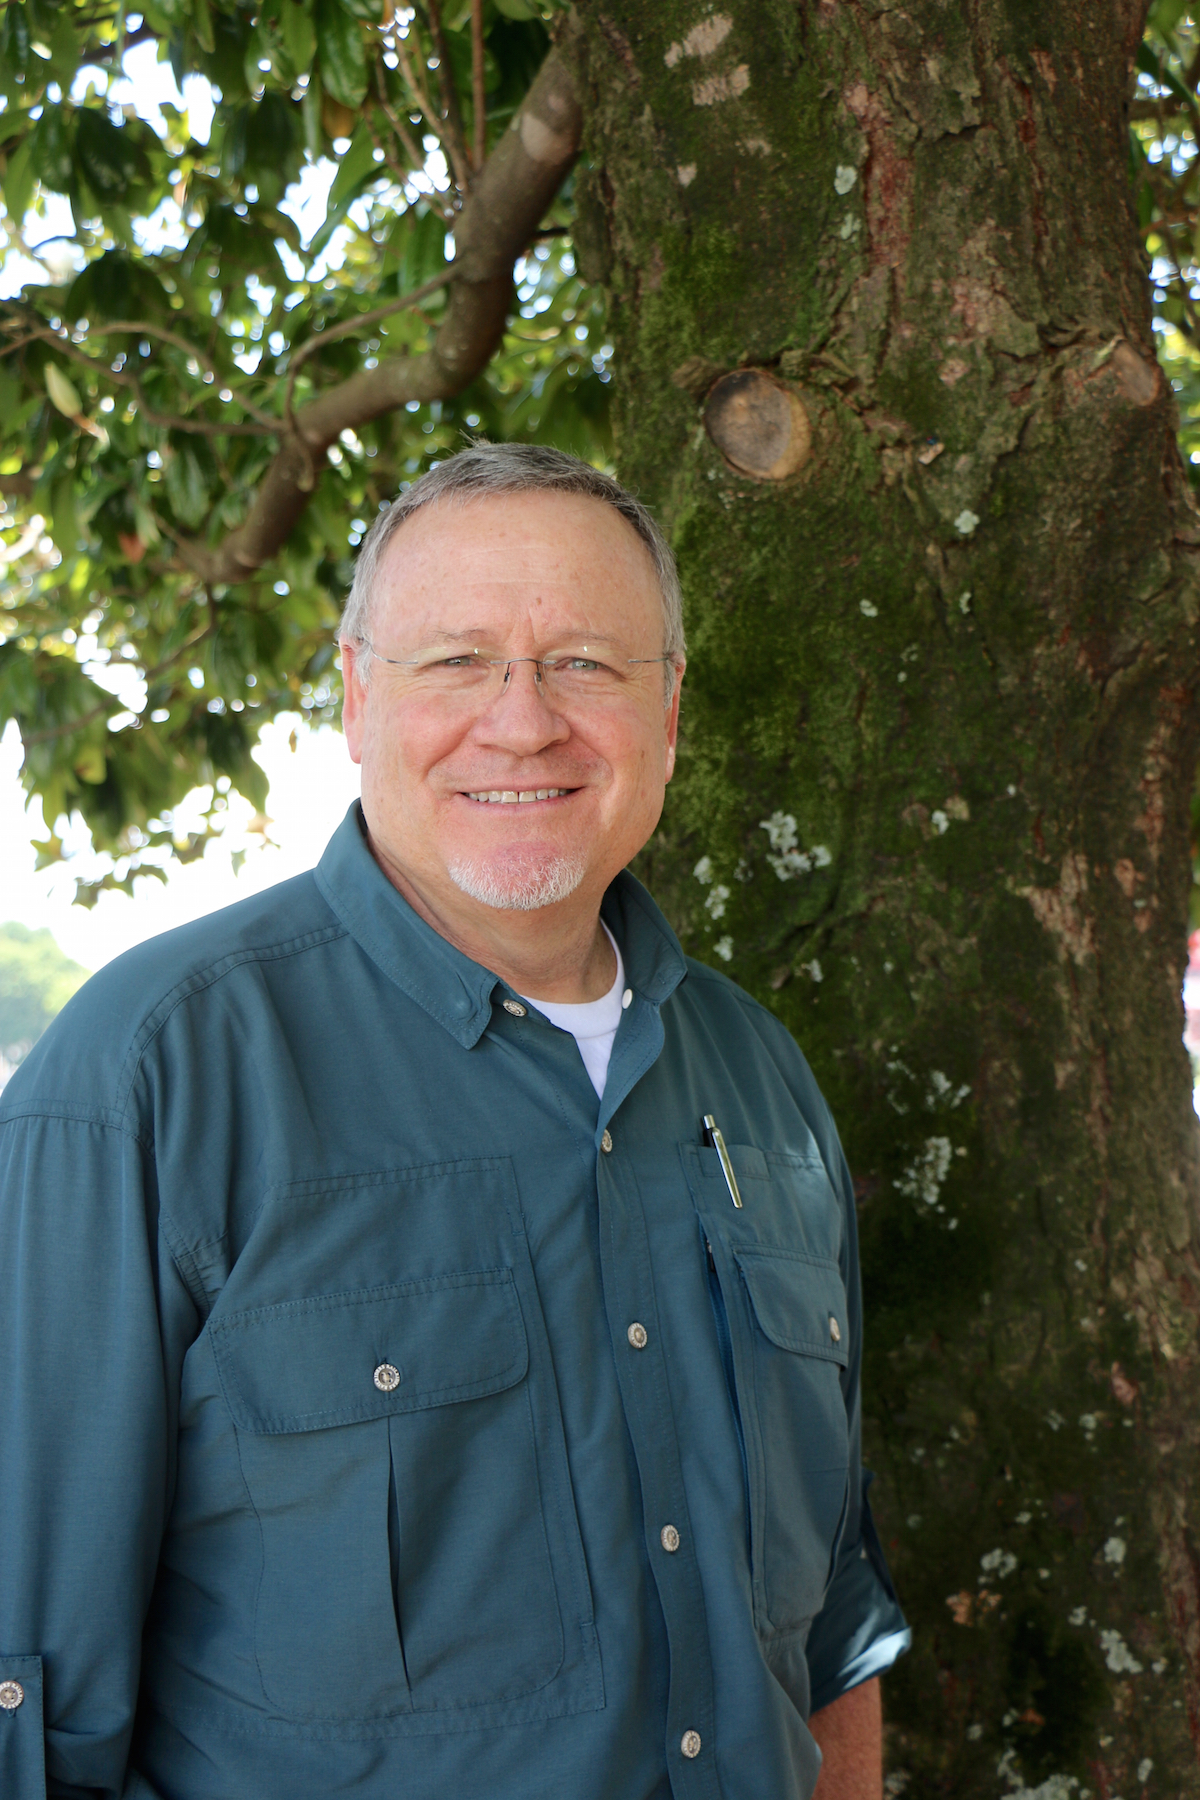 In spring 2016, Jeff Miller took a position as UGA Cooperative Extension coordinator for the Atlanta area.